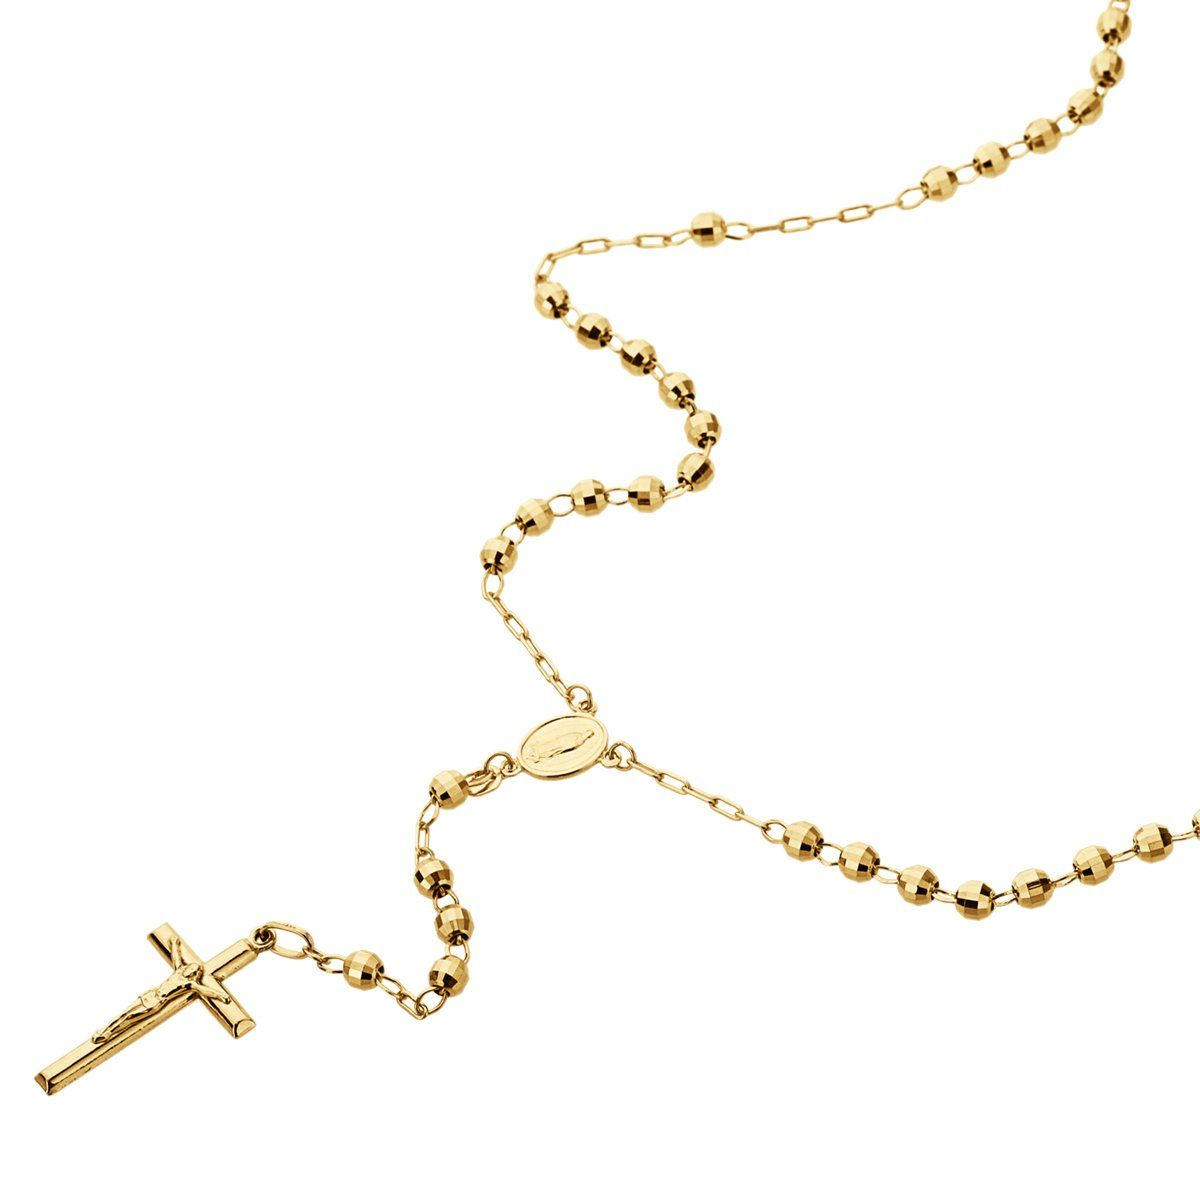 14k Gold Tricolor Yellow Or White Gold Chain 3mm Dc Bead Rosary Chain Necklace 16 18 20 24 Inches 20 Rosary Chain Necklace White Gold Chains Real Gold Necklace